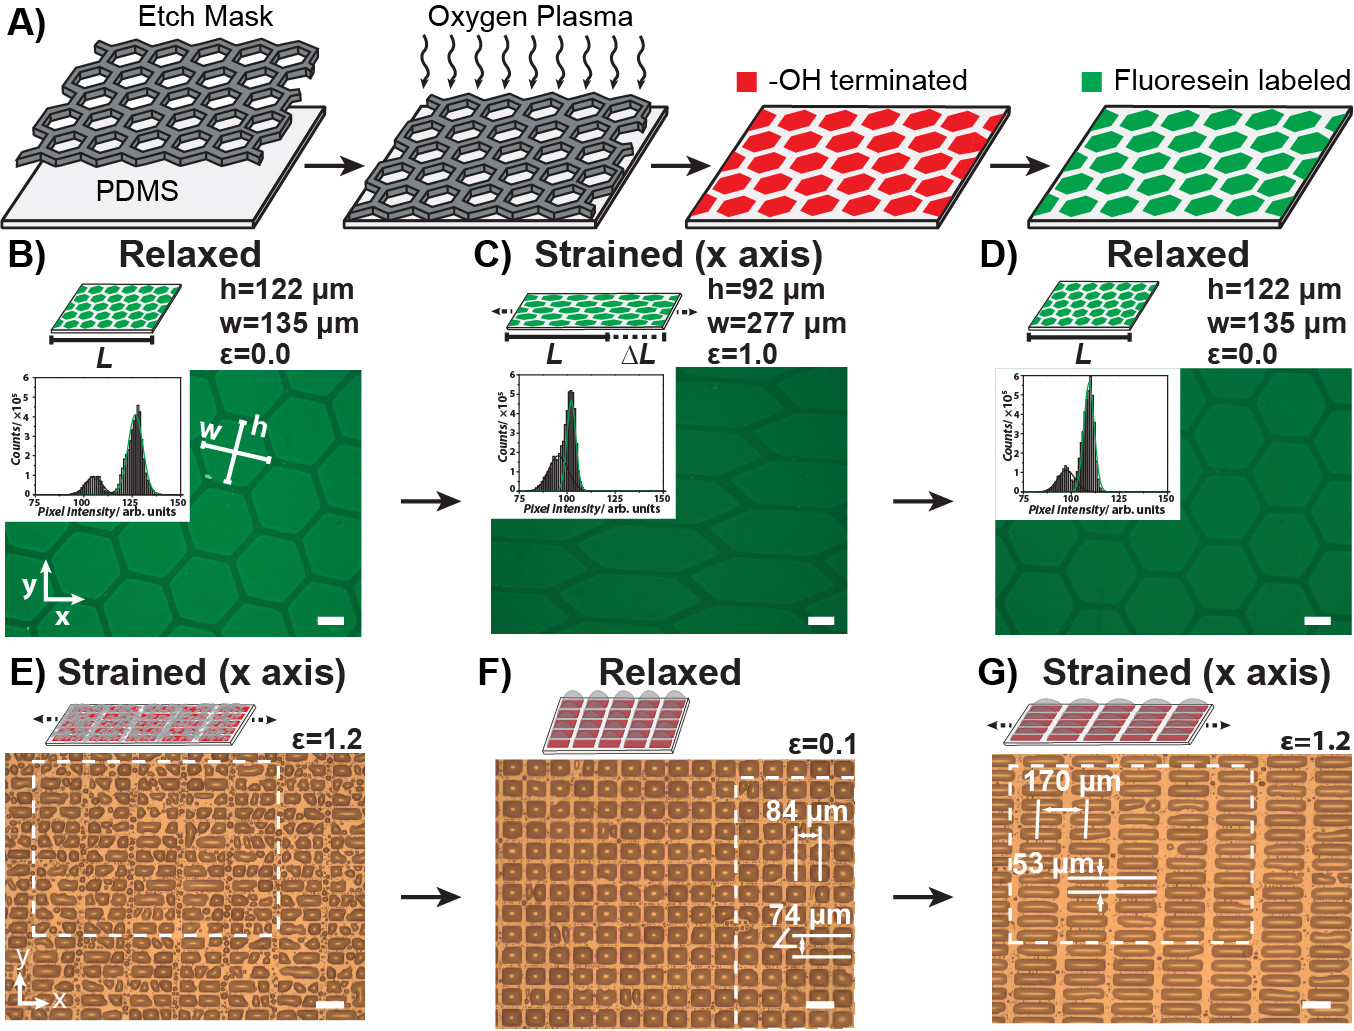 Journal Club for February 2019: Stretchable Chemical